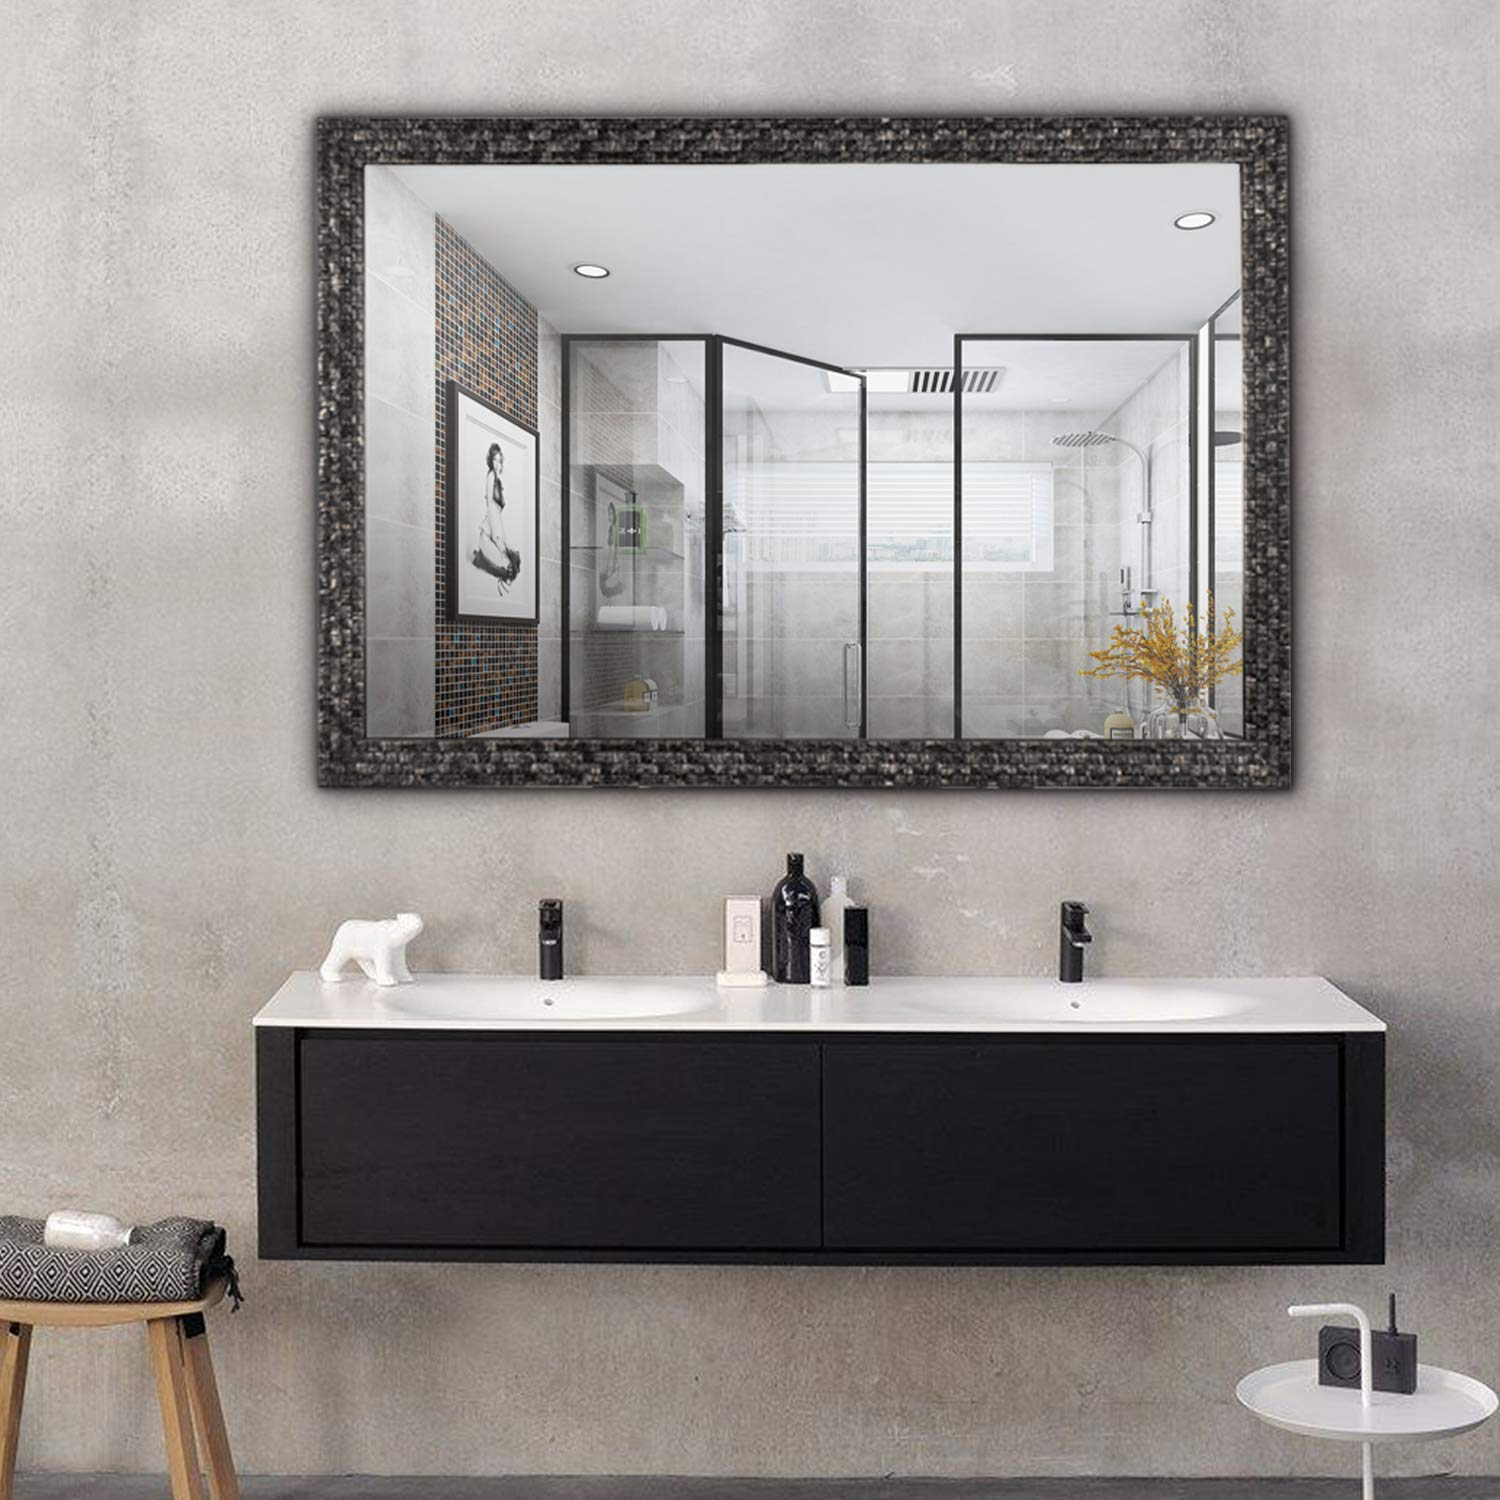 Hans&Alice Beveled Bathroom Mirrors Wall Mounted, Modern Framed Mirror for  Bathroom, Bedroom, Living Room Hanging Horizontal or Vertical Commercial ...